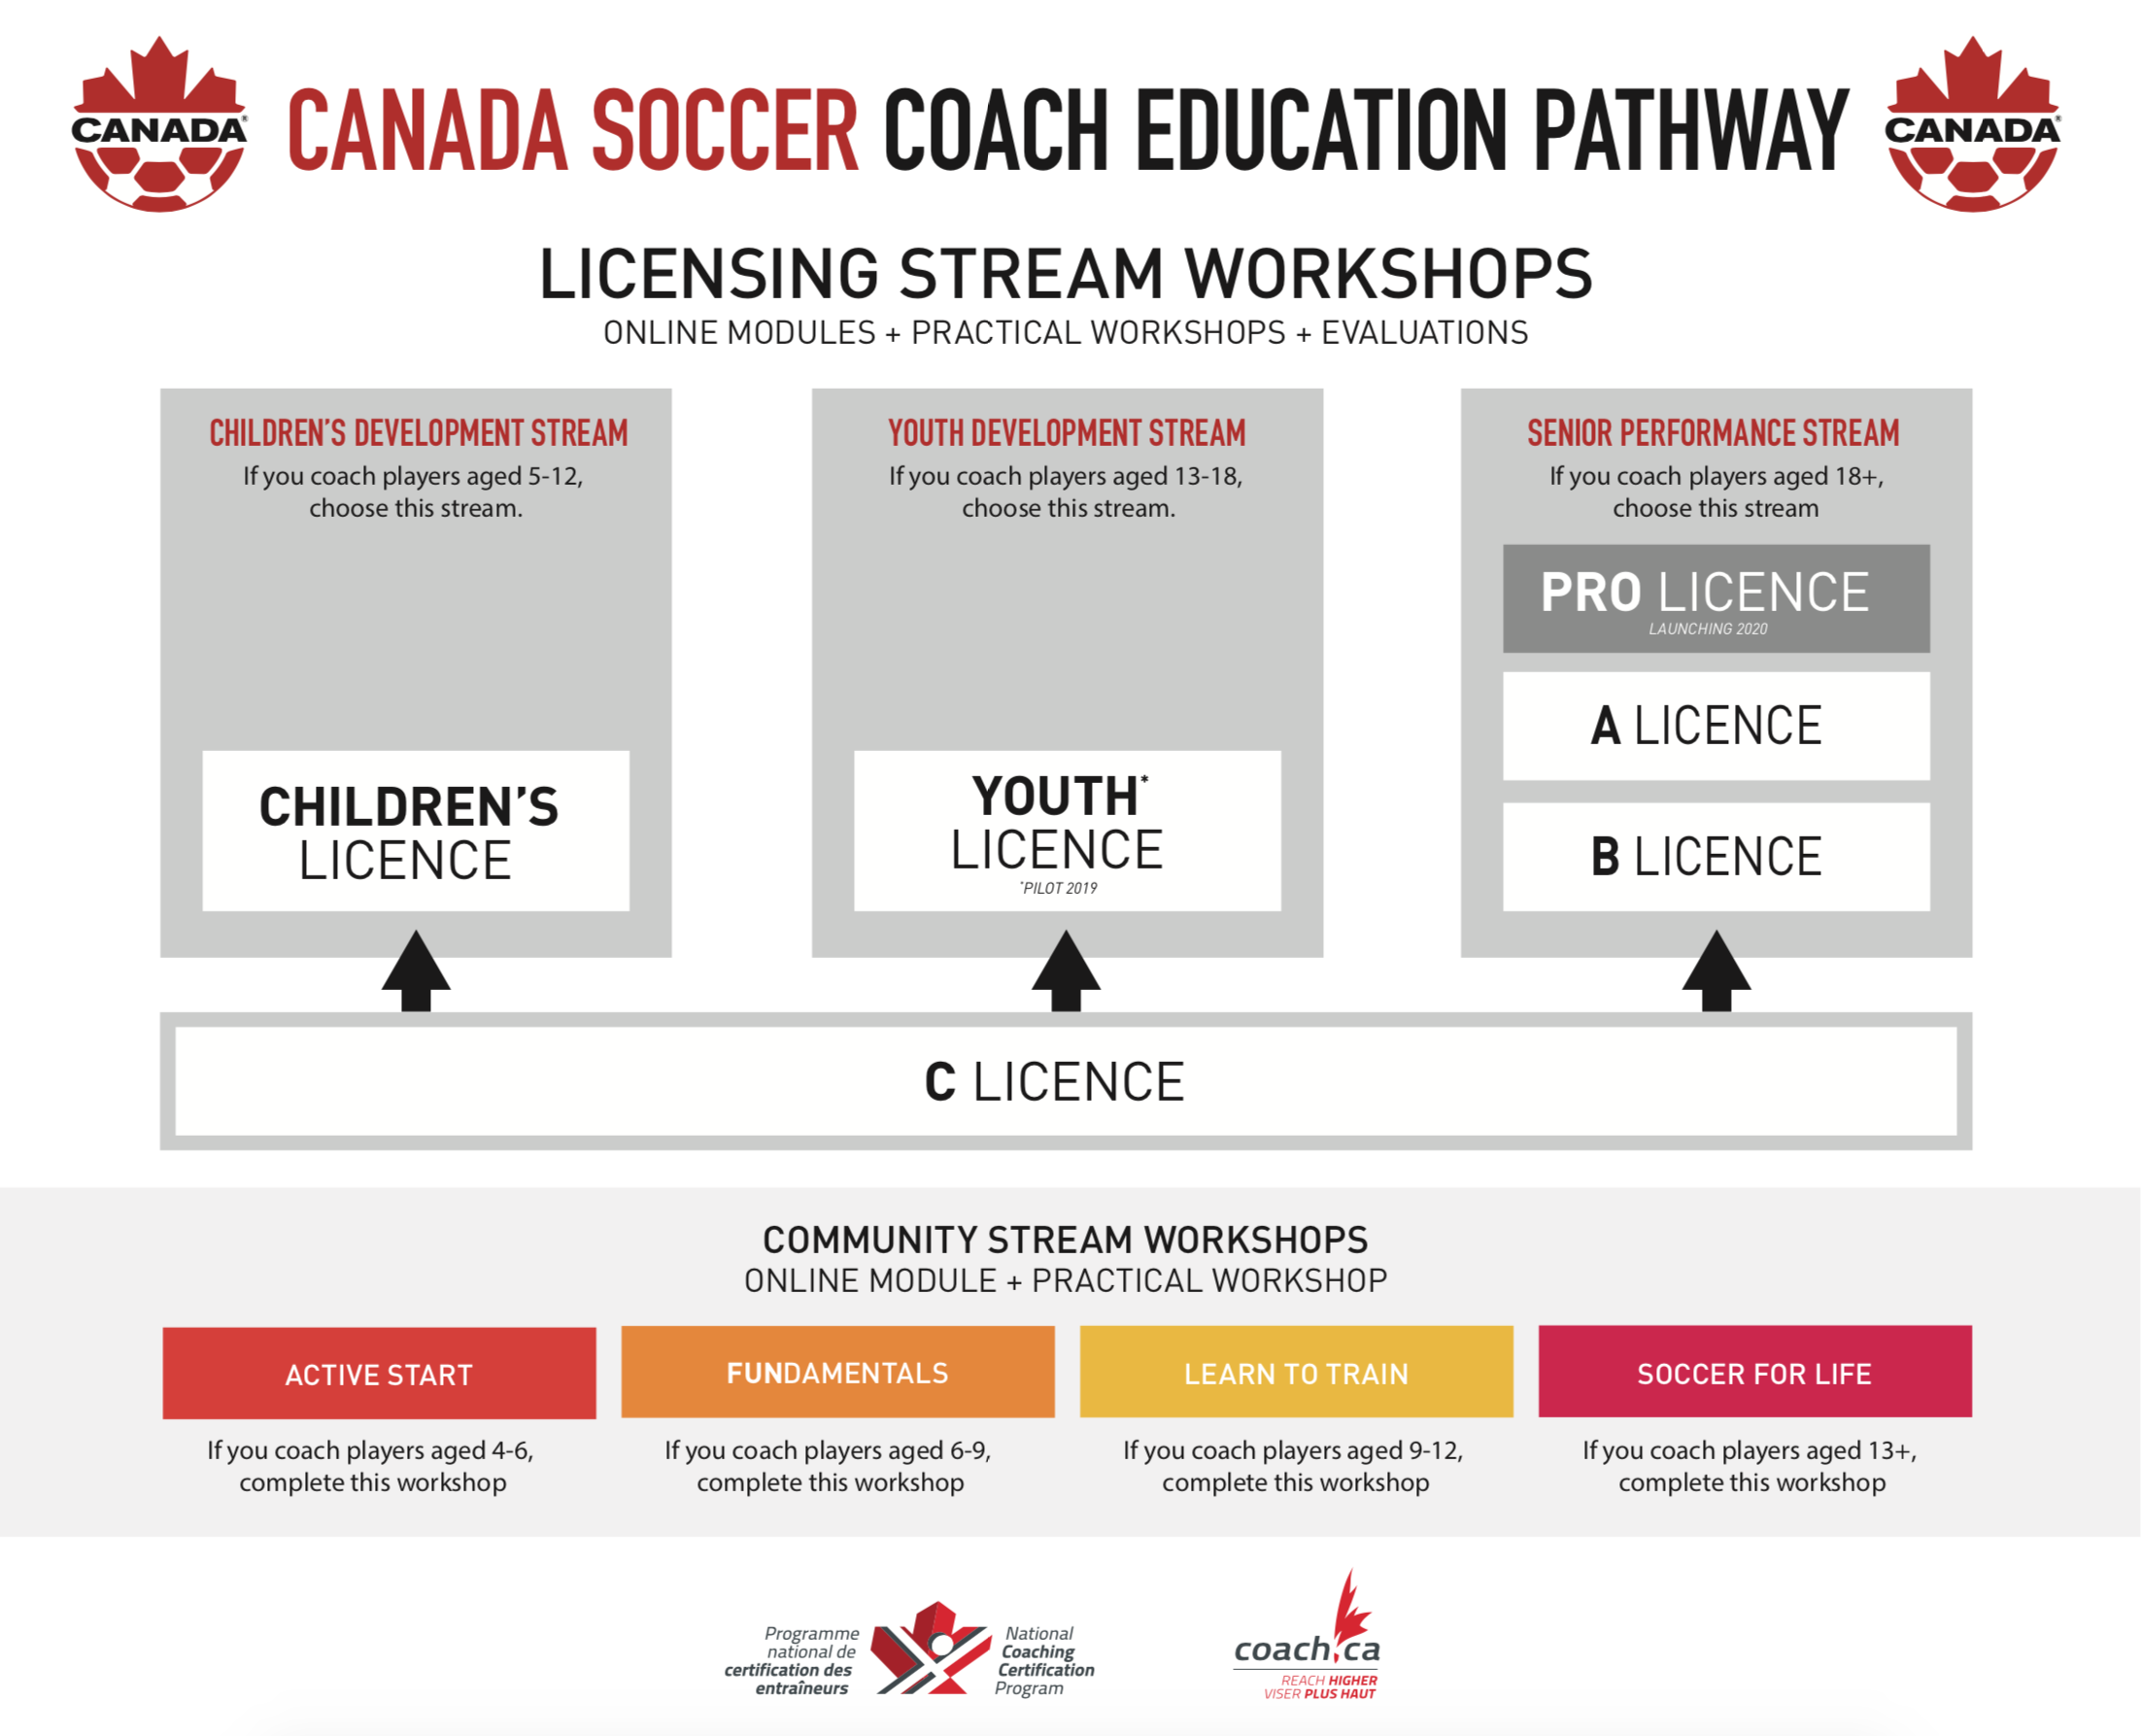 Coach education Pathway